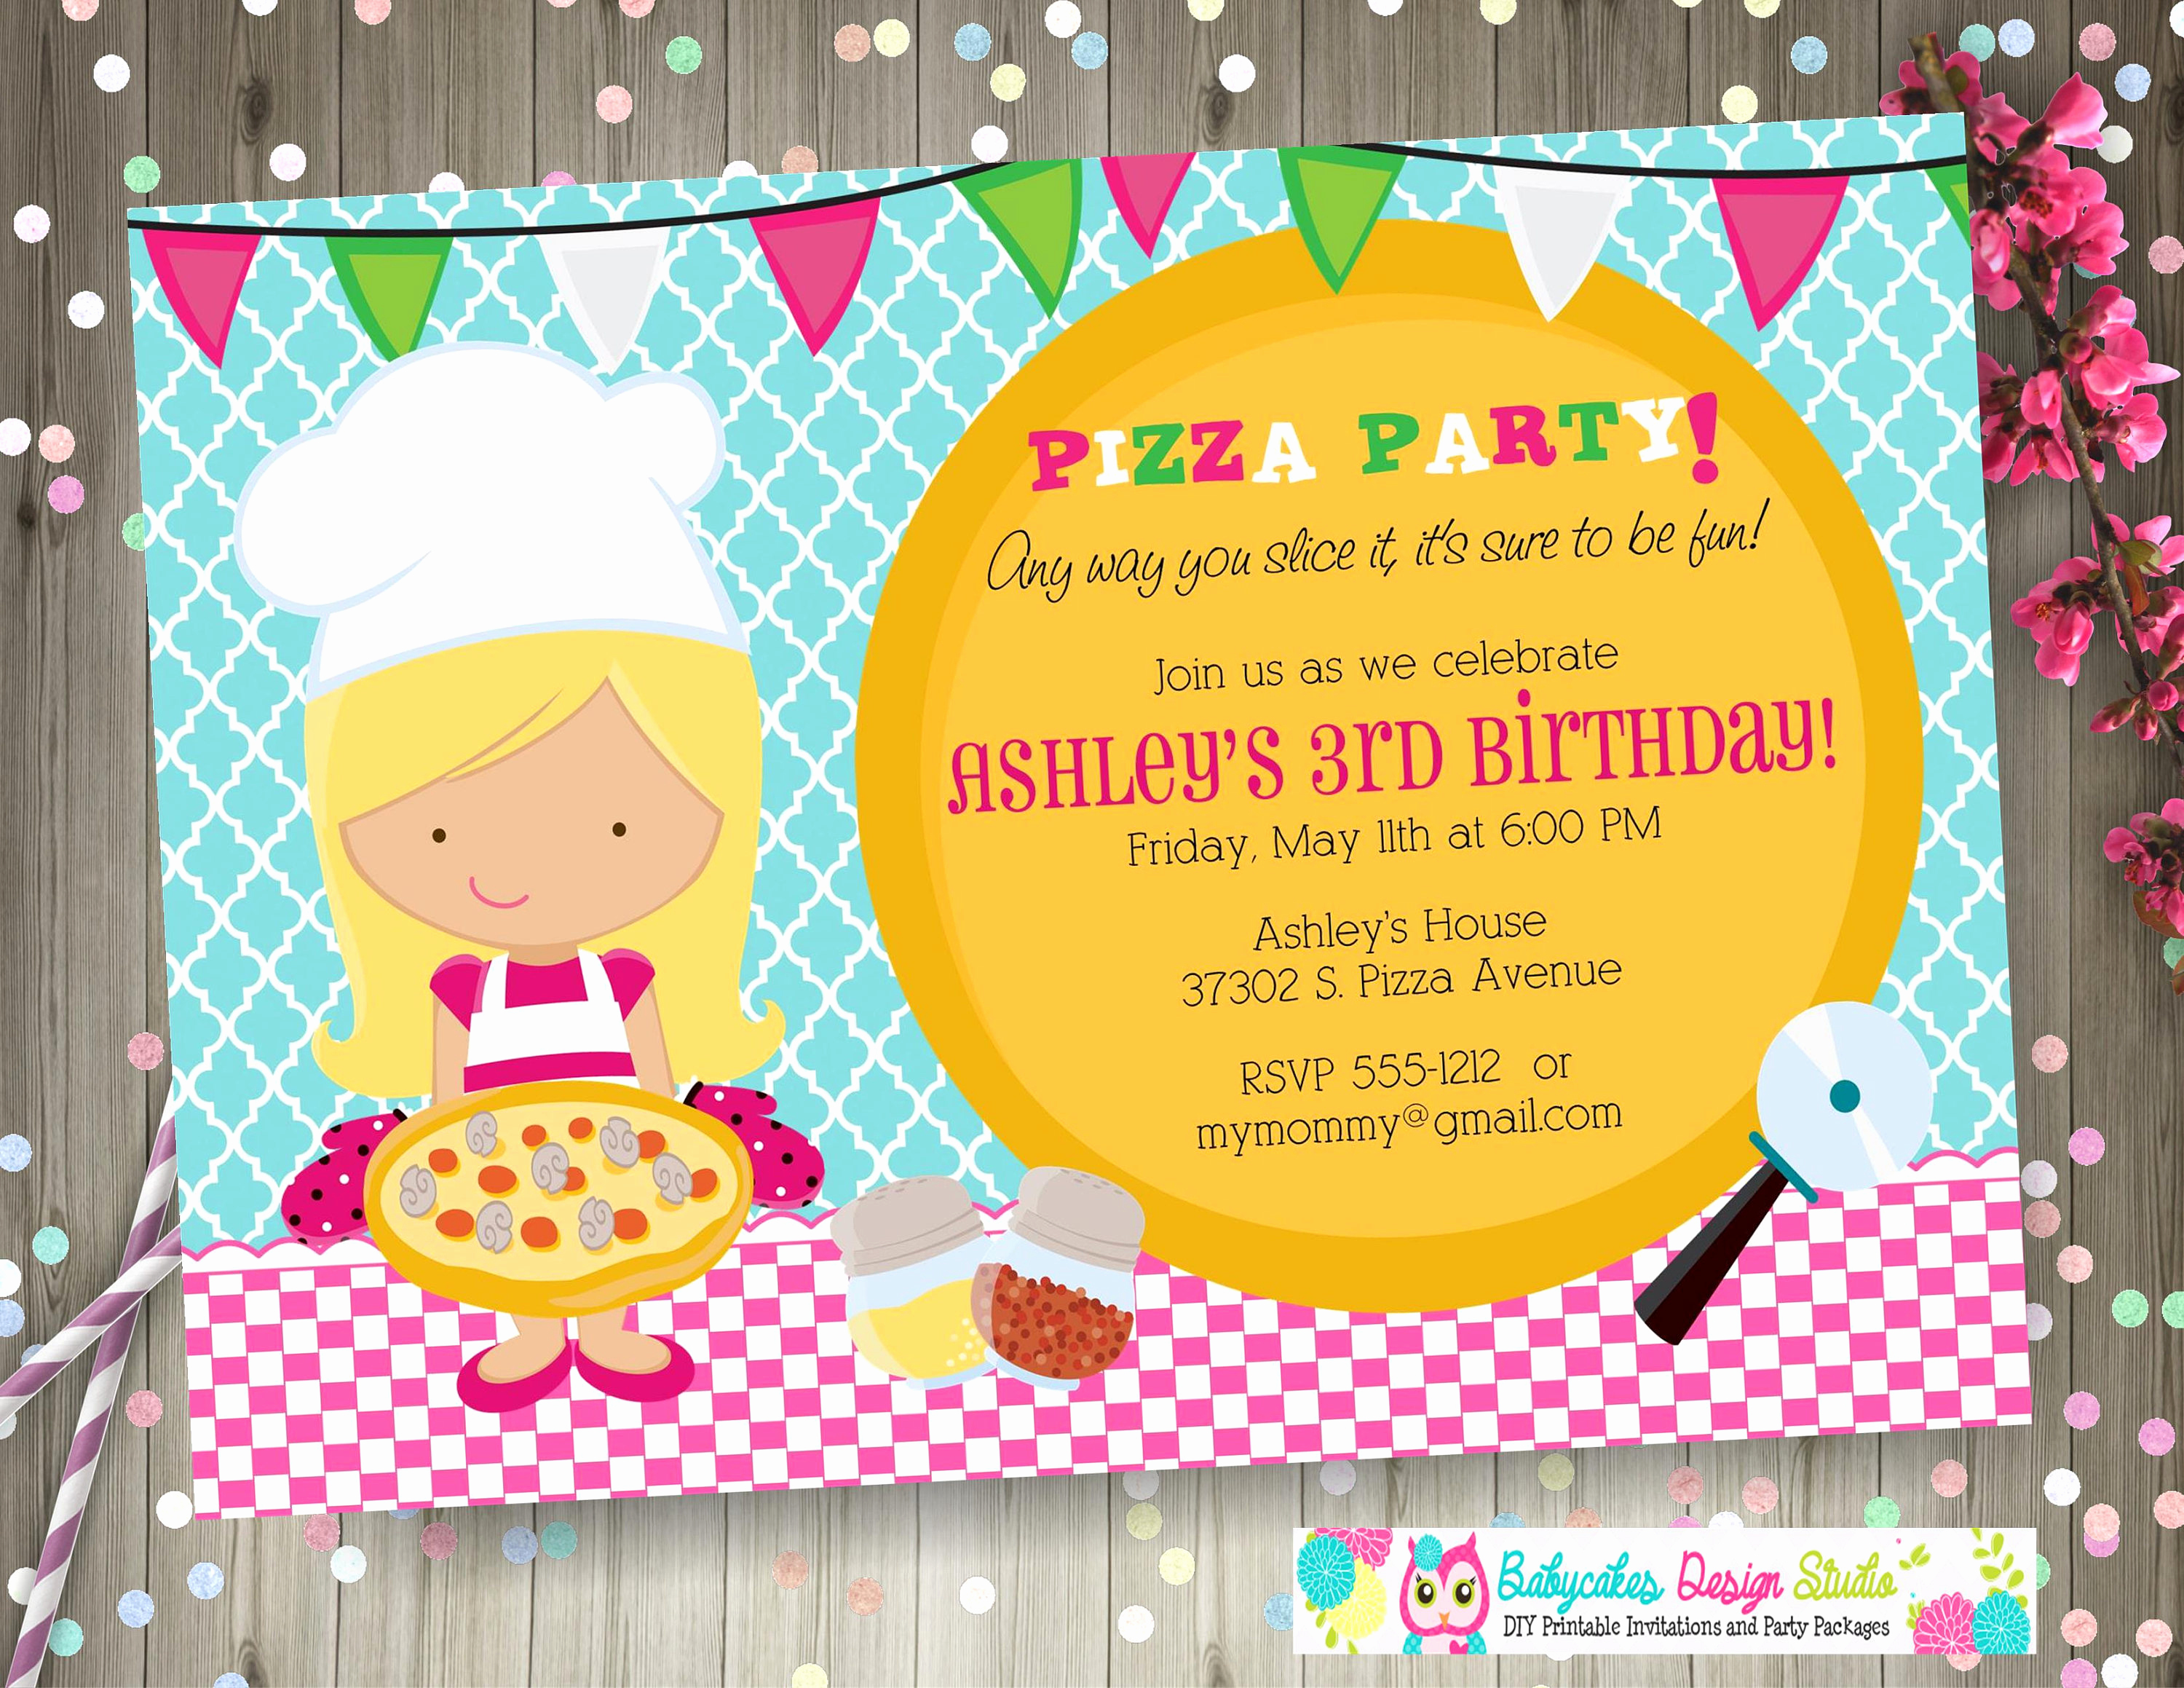 Pizza Party Invitation Wording Luxury Pizza Birthday Party Invitation Invite Pizza Party Invitation